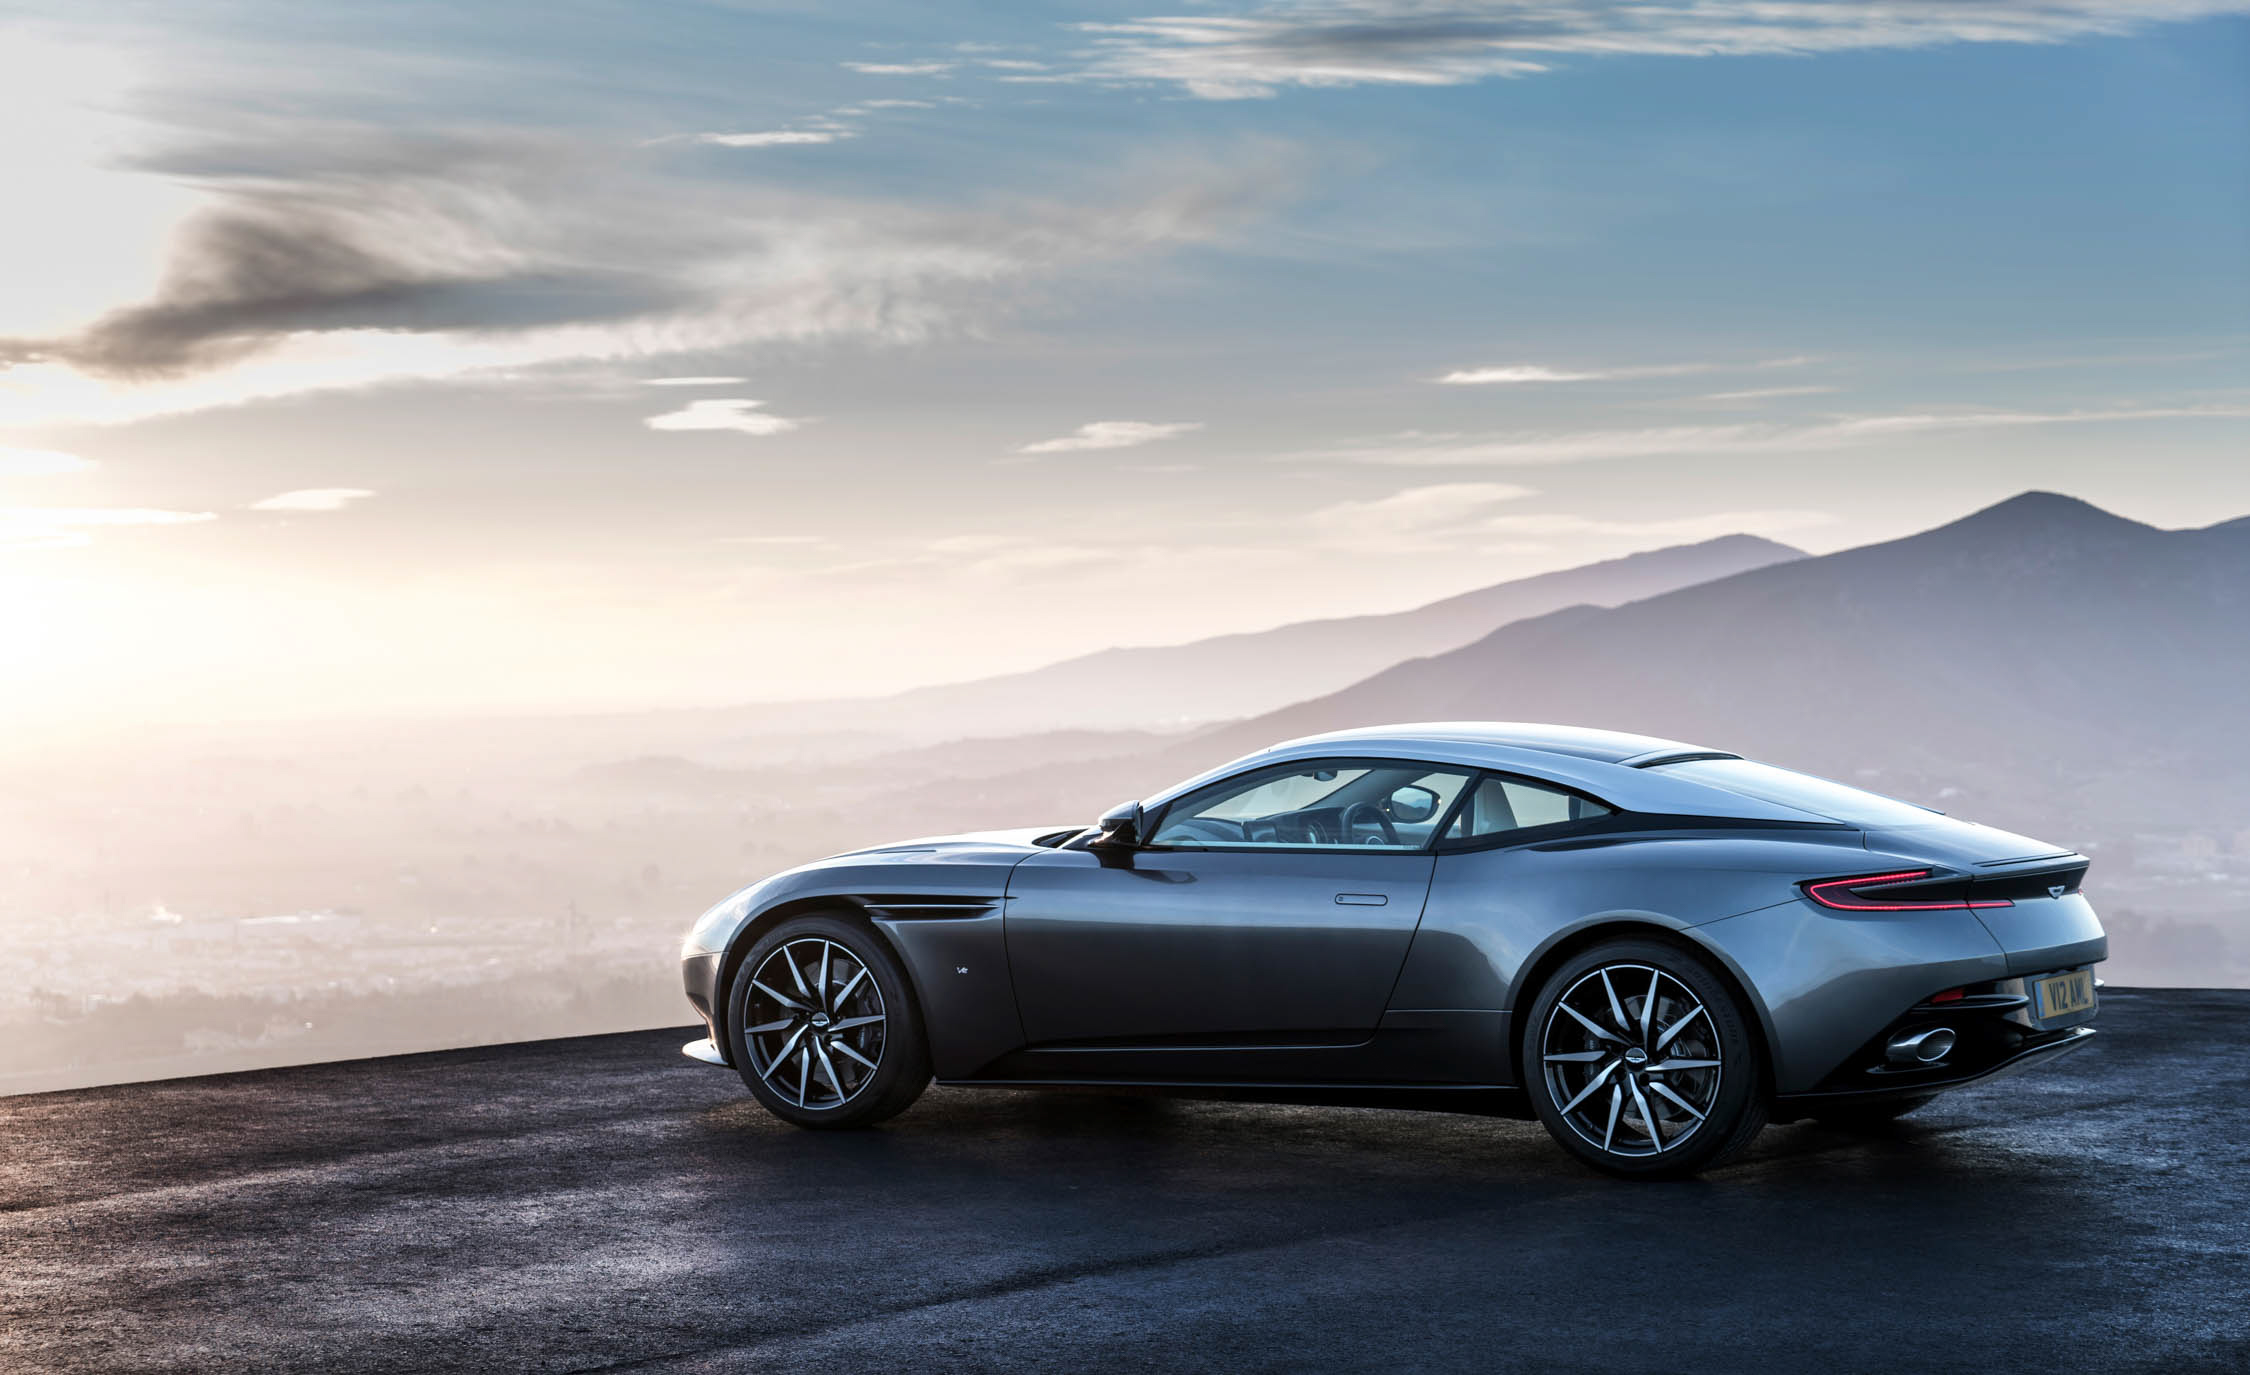 2017 Aston Martin Db11 Exterior Rear And Side View (View 16 of 22)